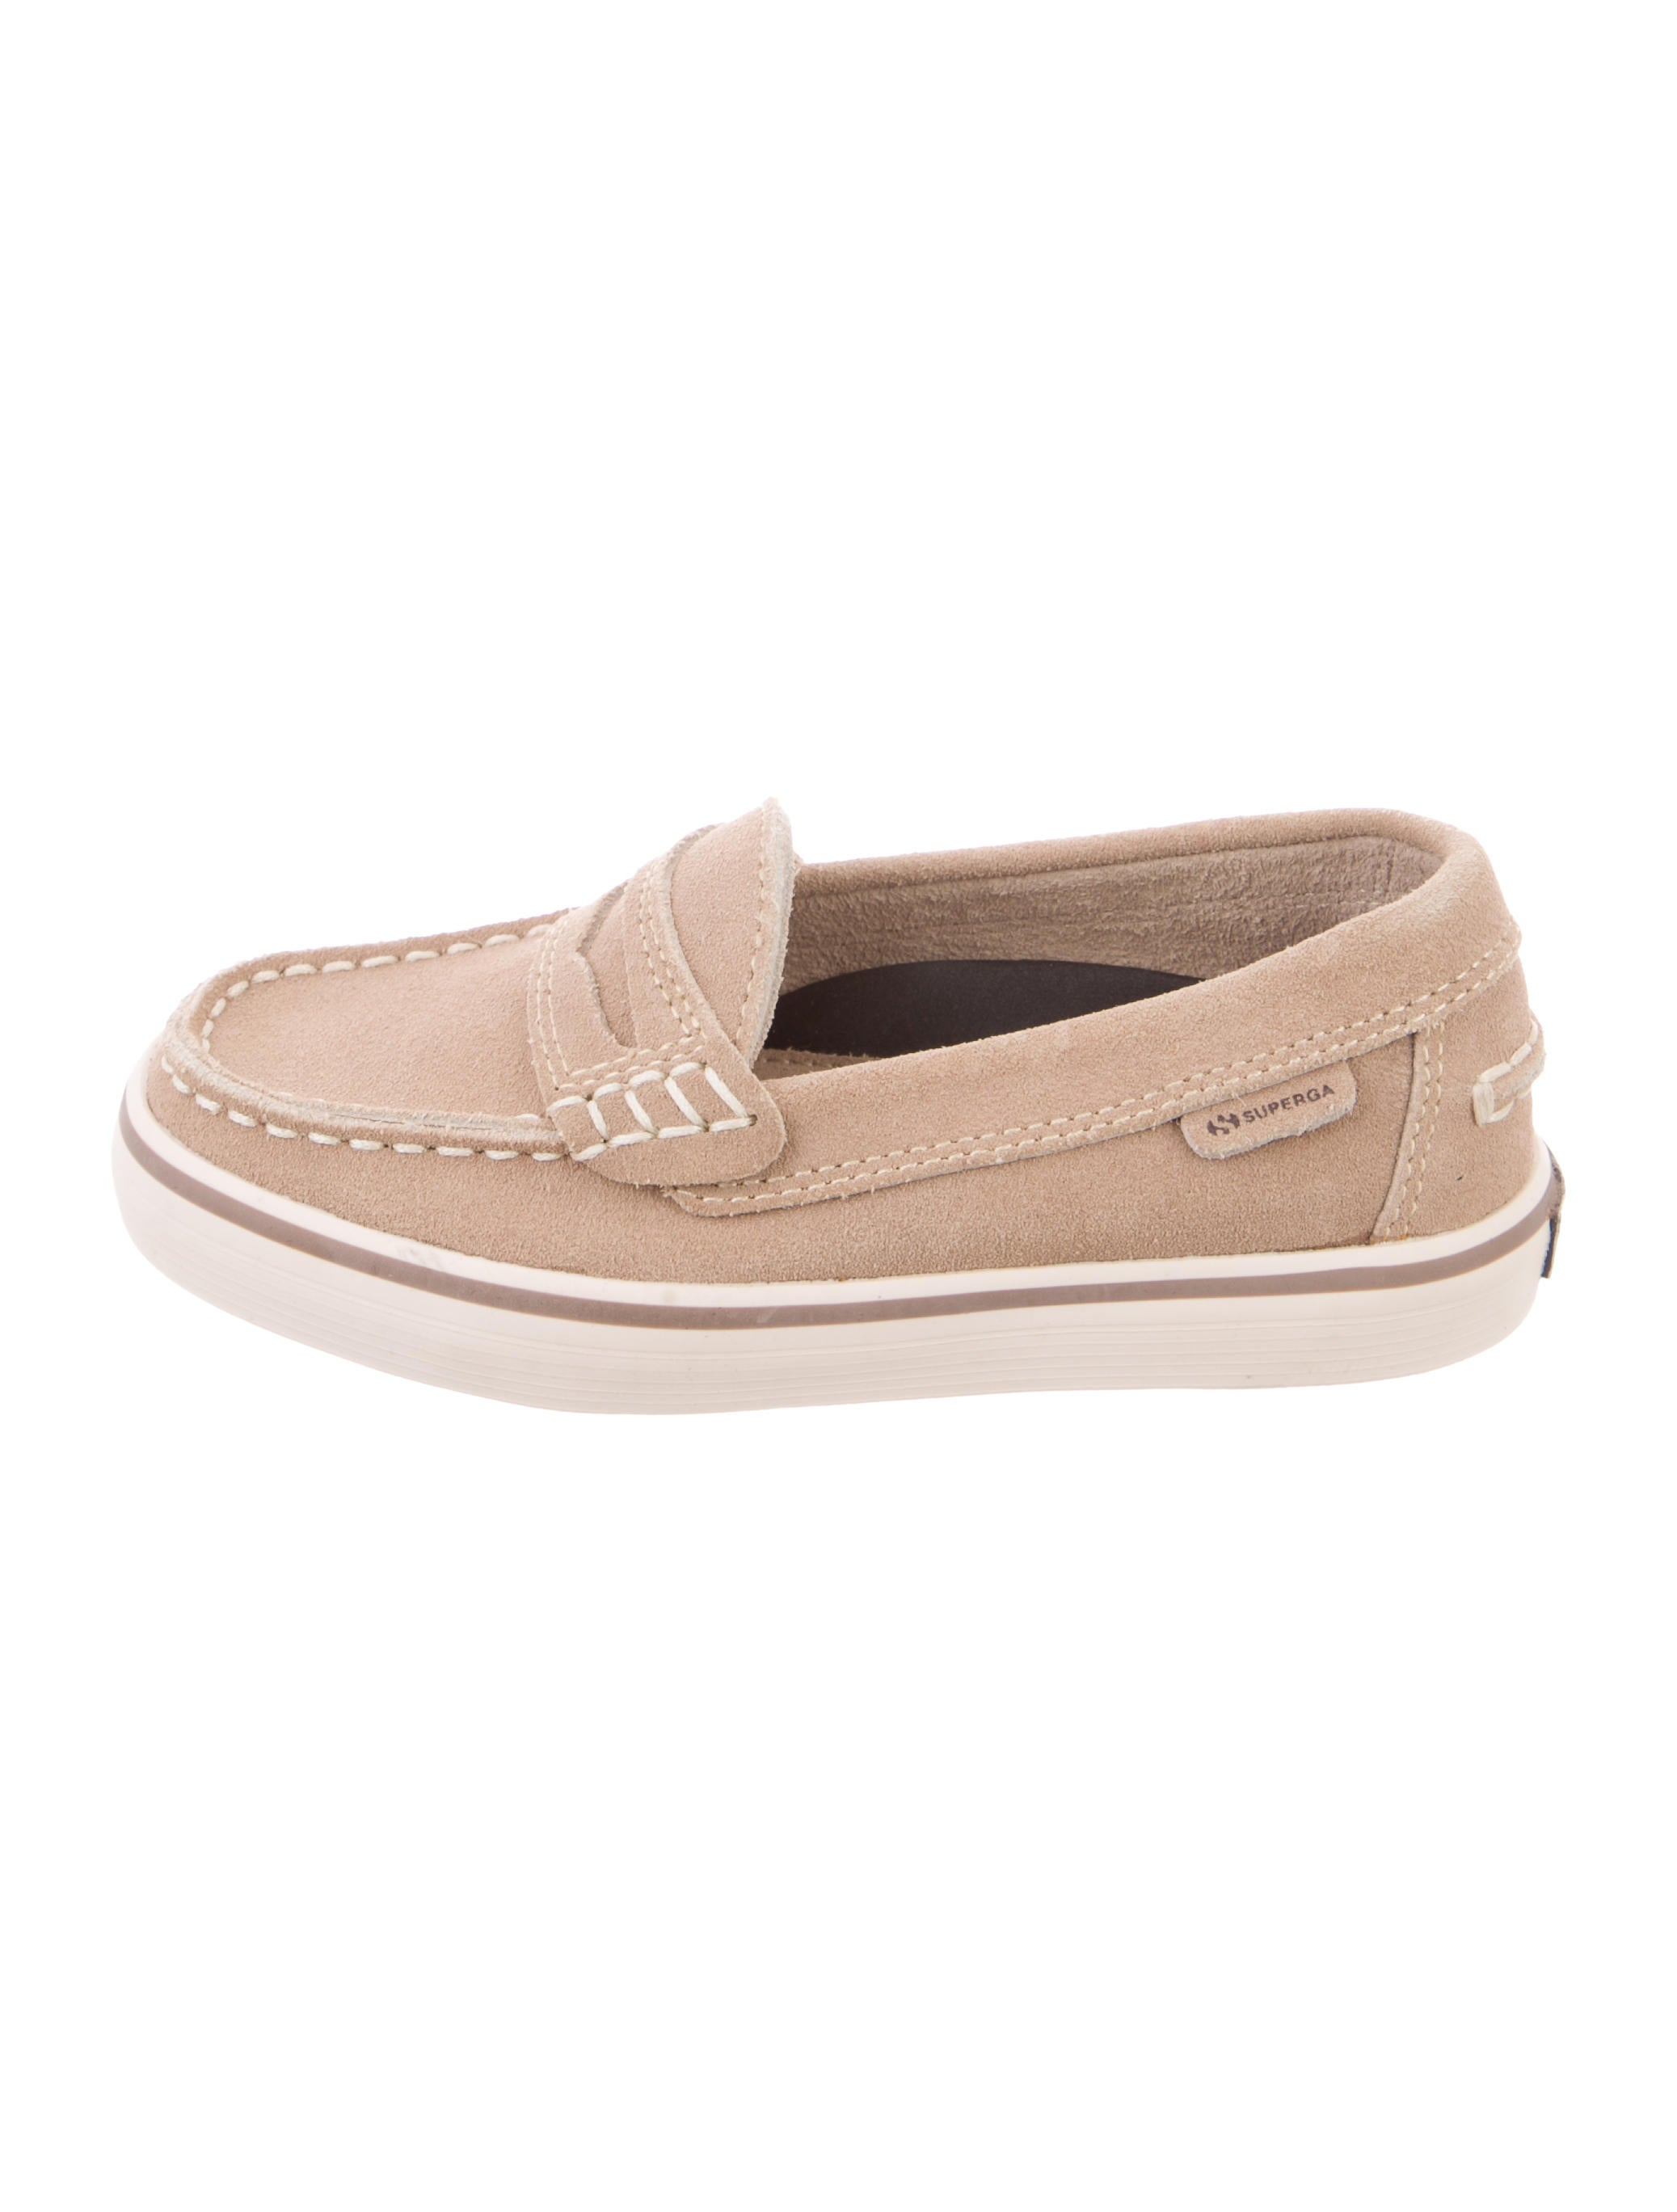 Superga Boys' Suede Round-Toe Loafers